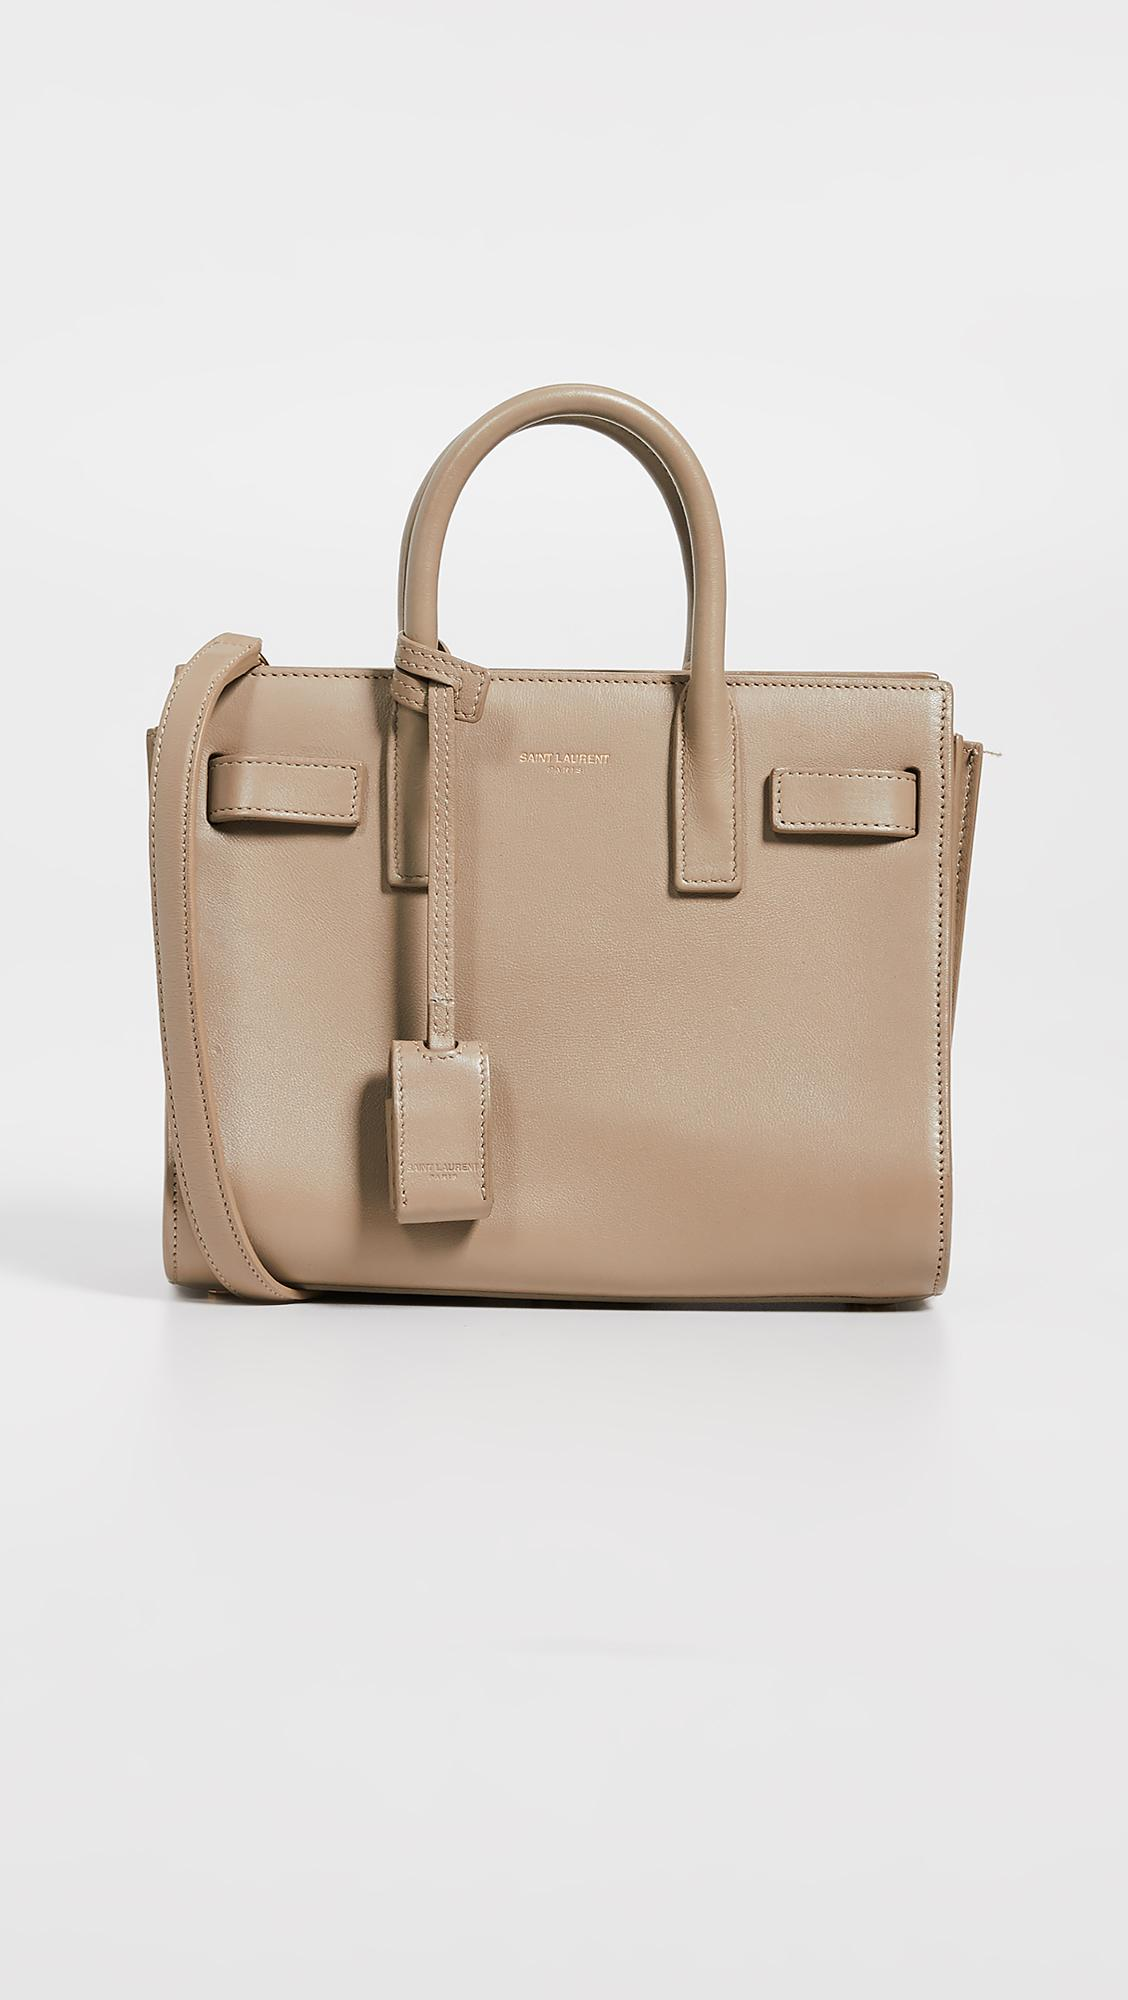 834073ca8ef9 Lyst - What Goes Around Comes Around Ysl Sac De Jour Nano Bag in Natural